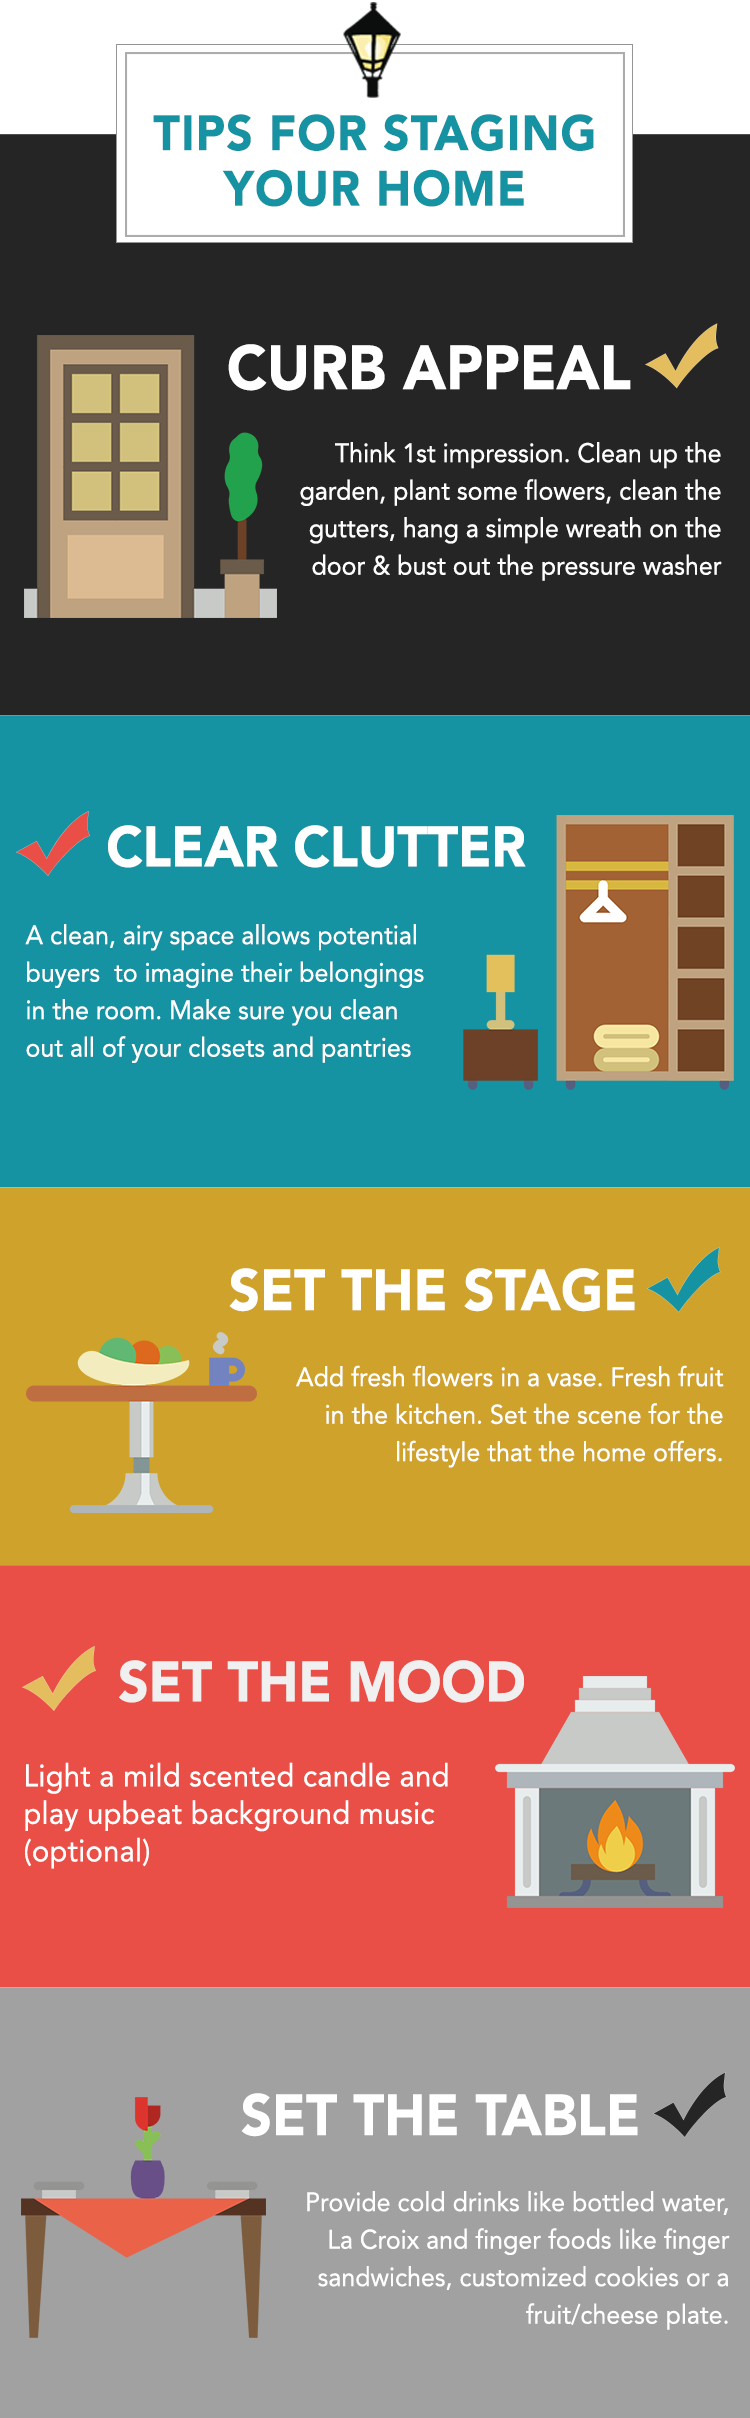 5 Tips For Staging Your Home Infographic